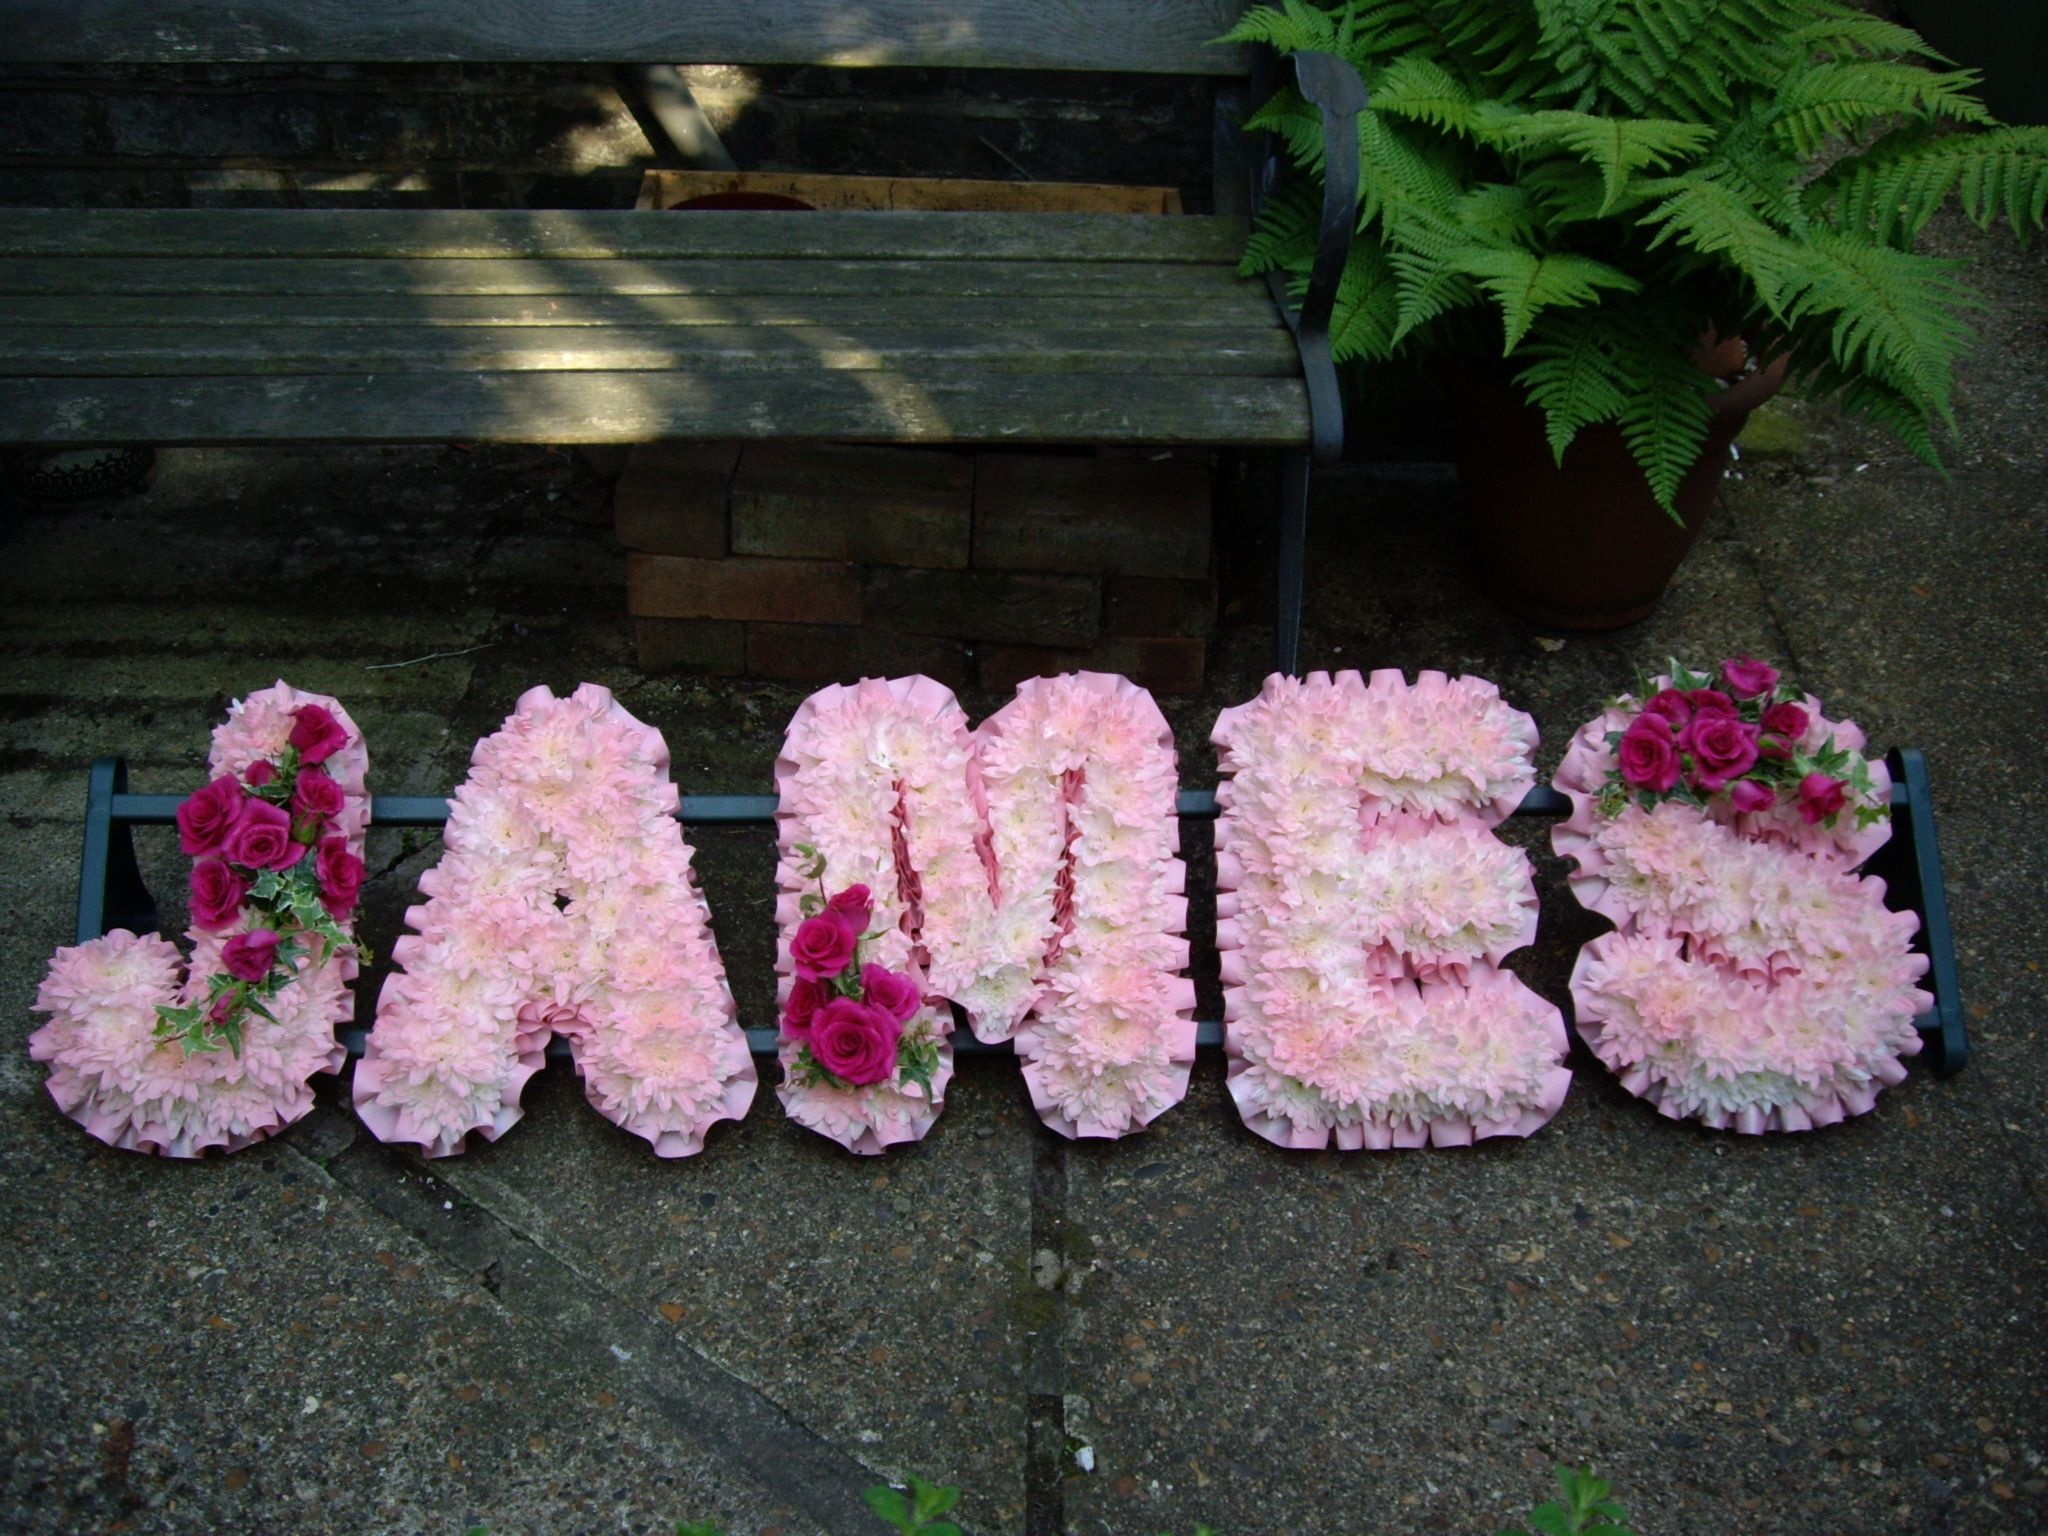 Lettering sympathy flowers pinterest west london west london flowers specialise in stunning wedding flowers bespoke funeral flowers and flowers for any occasion with over 20 years experience izmirmasajfo